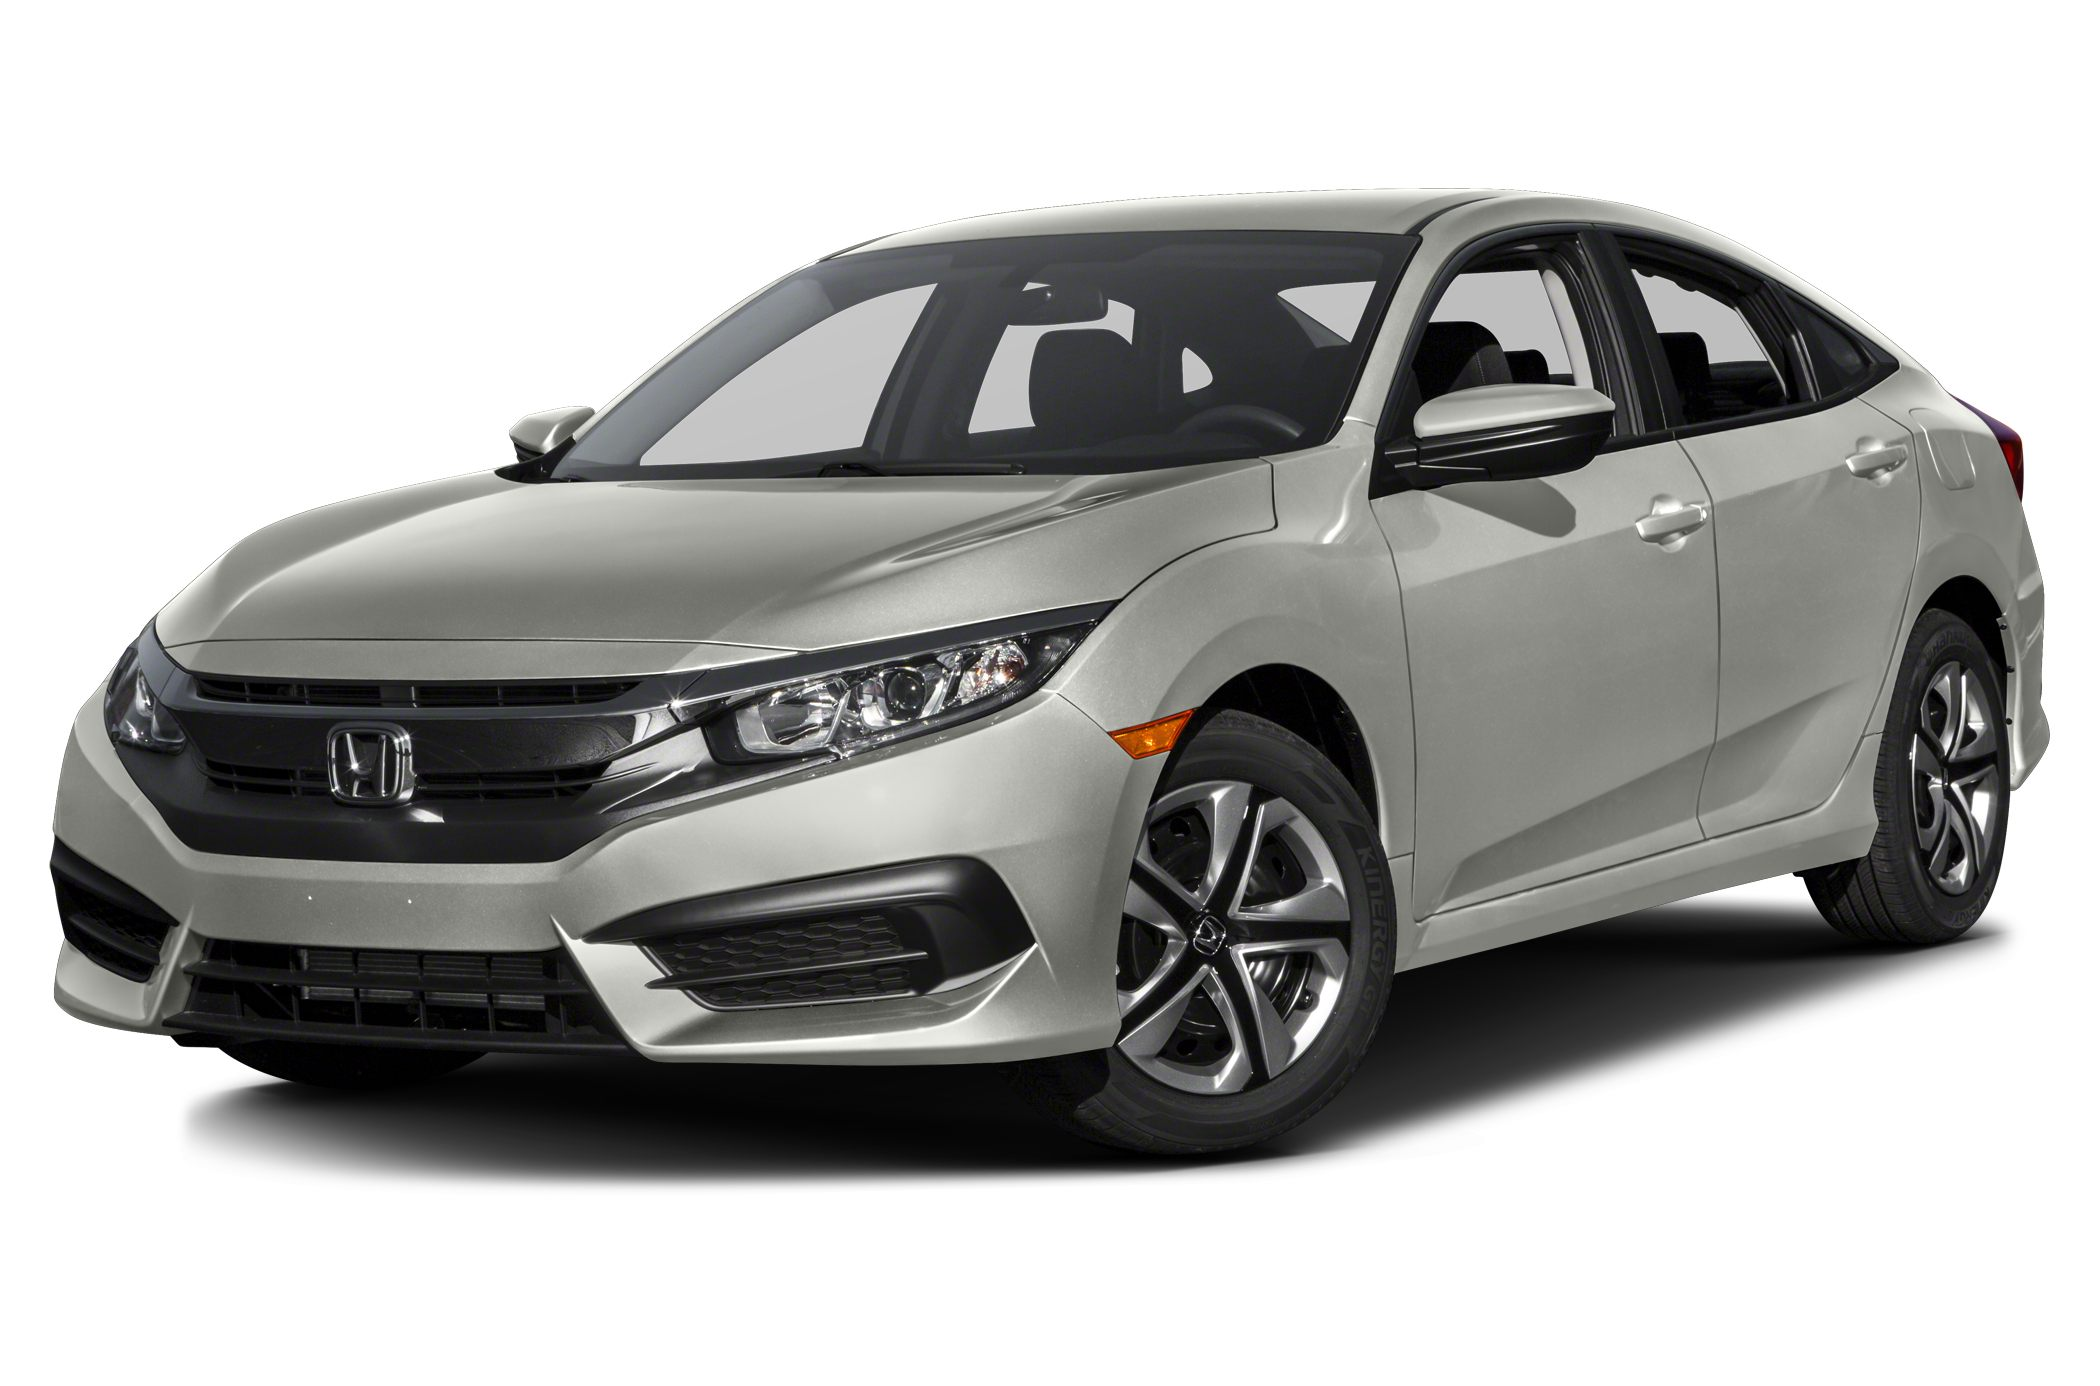 2016 Honda Civic LX Optimizes every drop of gas Brimming with creature comforts Buy a new Honda